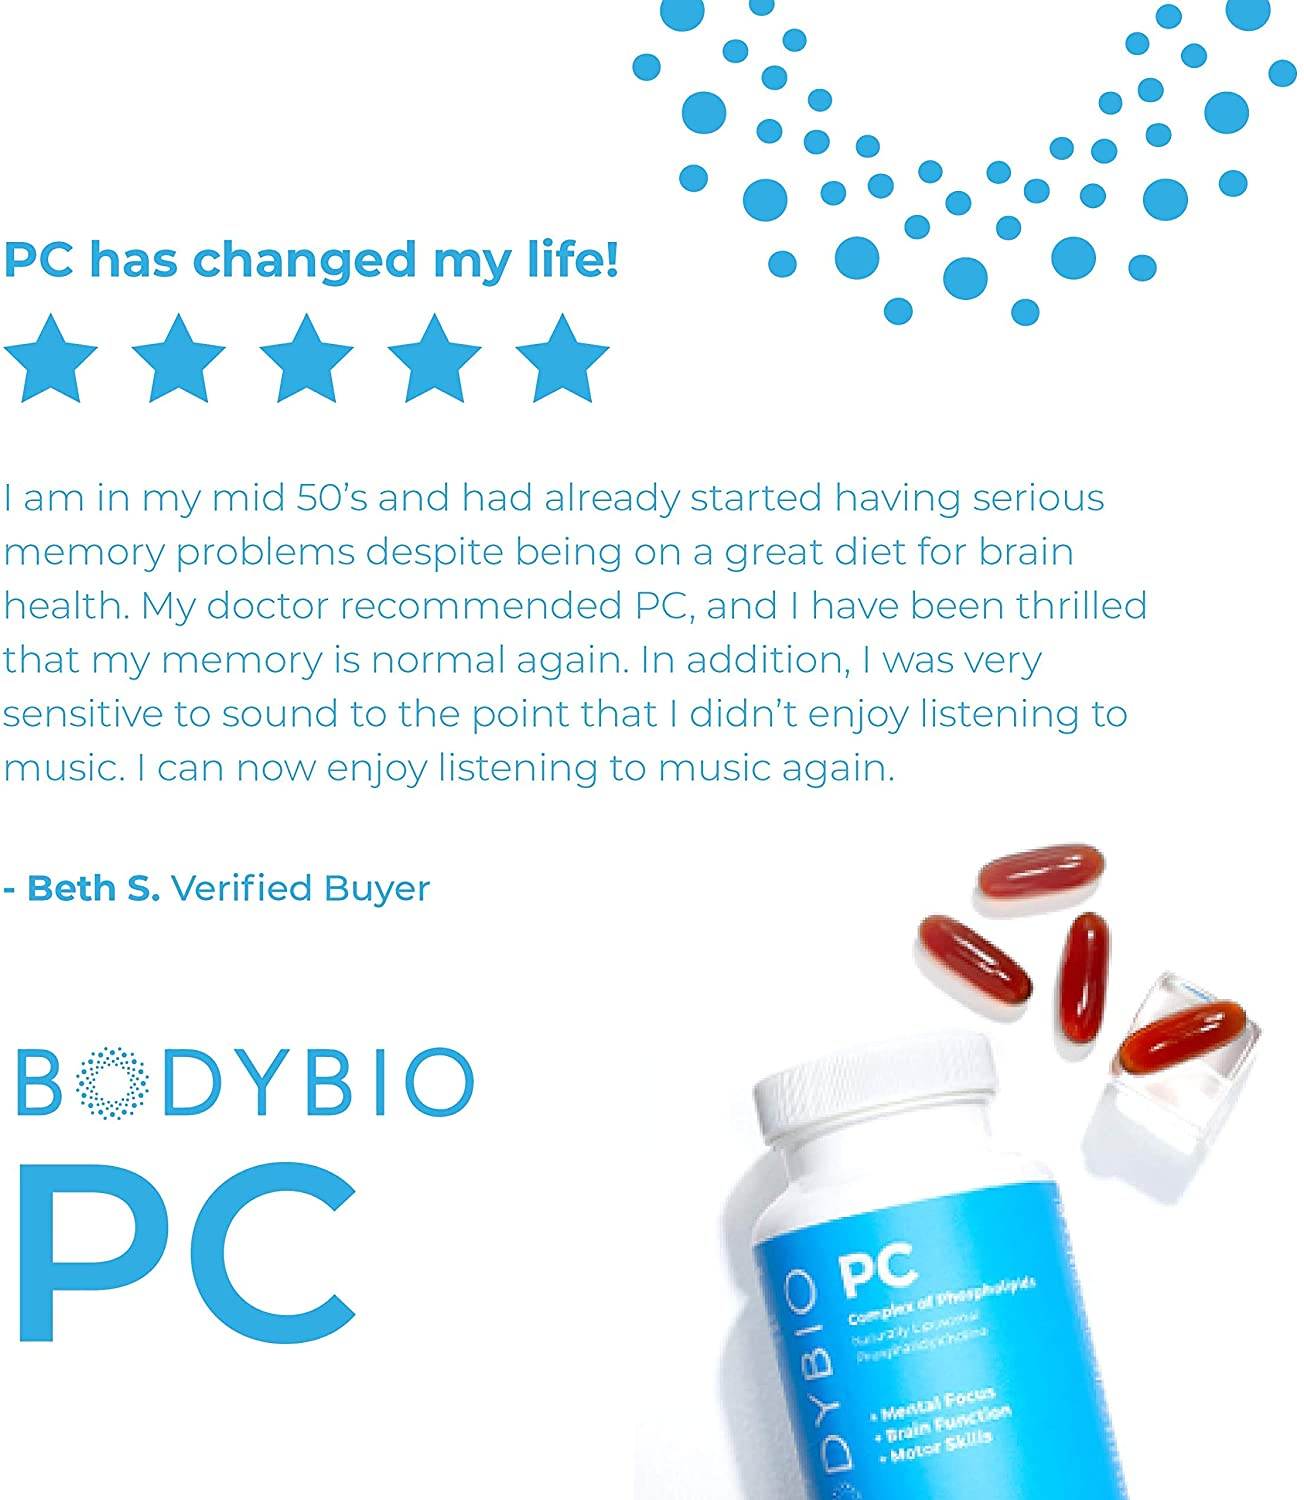 BodyBio PC - 8 oz